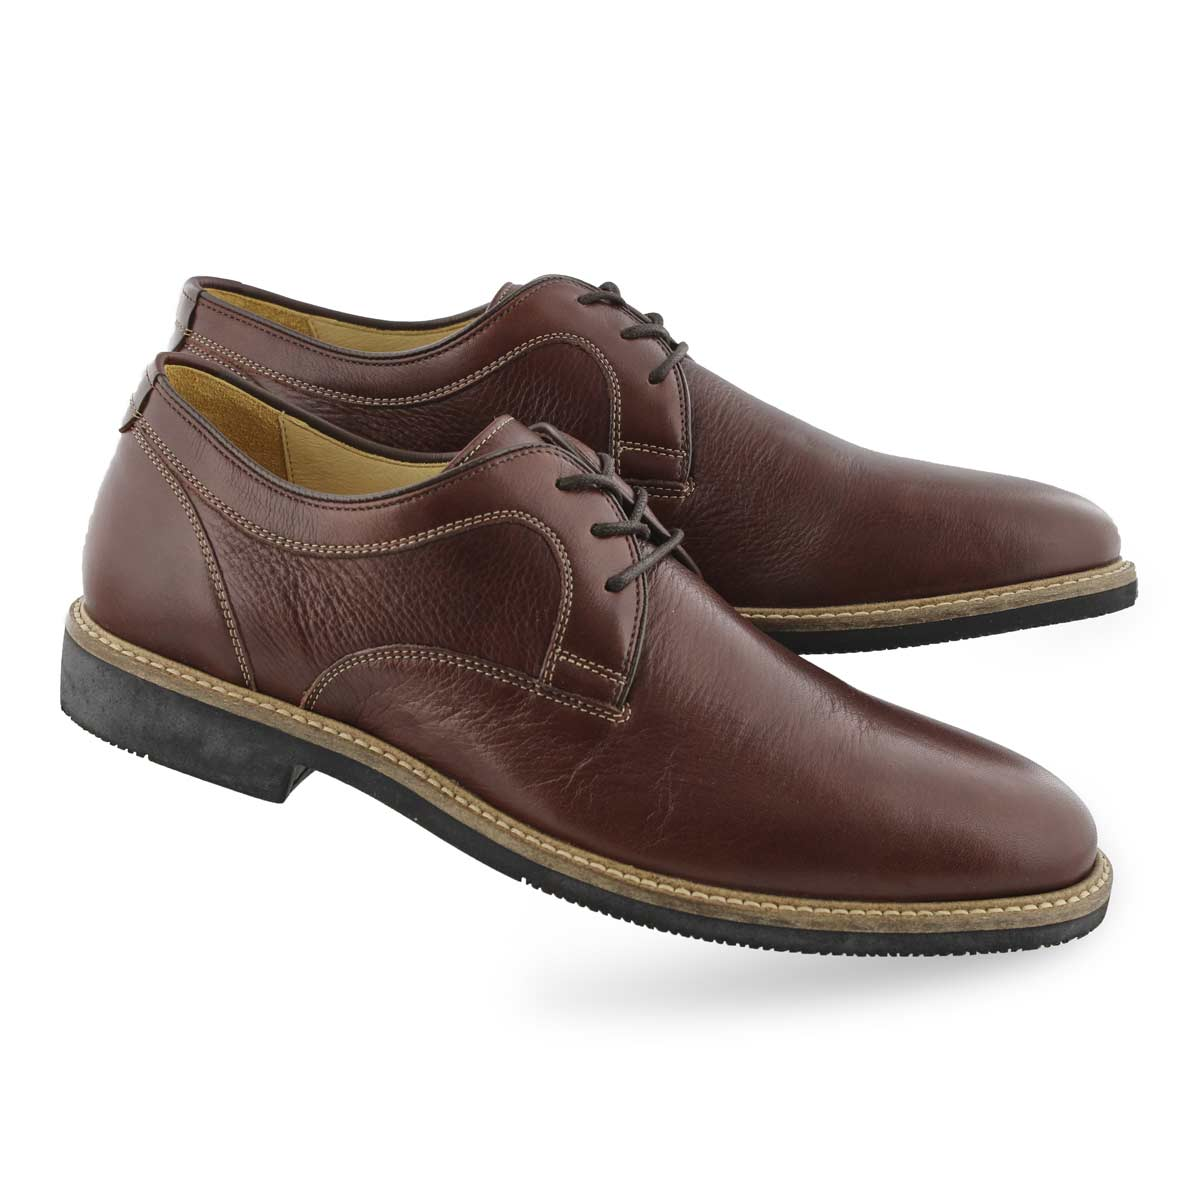 Mns Barlow Plain Toe tobaco dress oxford